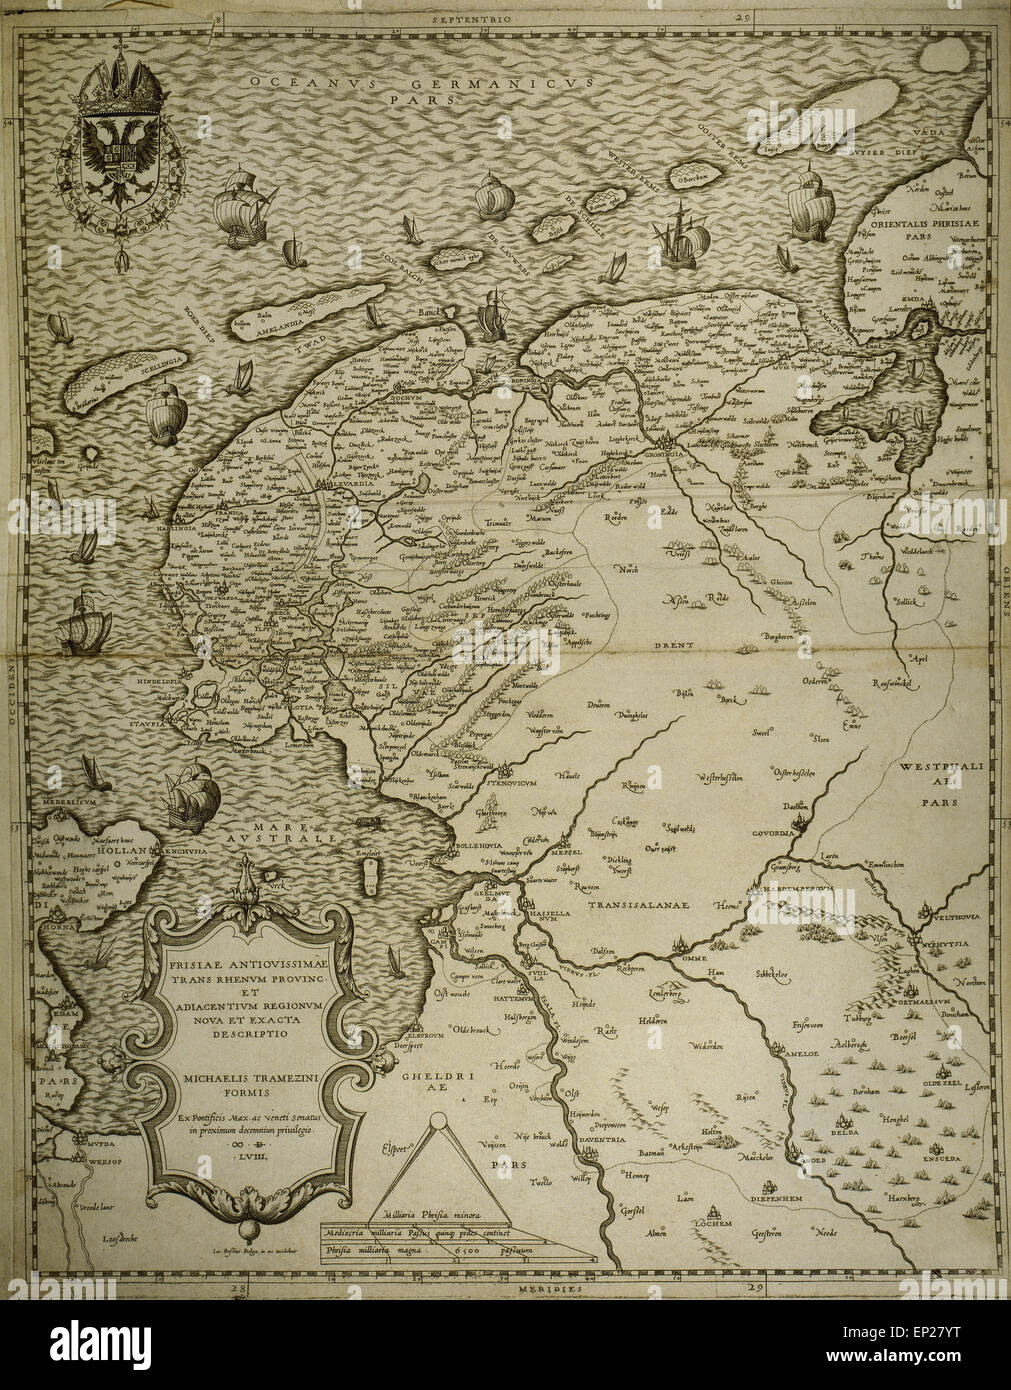 Friesland. Map of North of Netherlands. Made by Michaelis Tramezini, 1558. Printed by Iacobus Bossius. - Stock Image